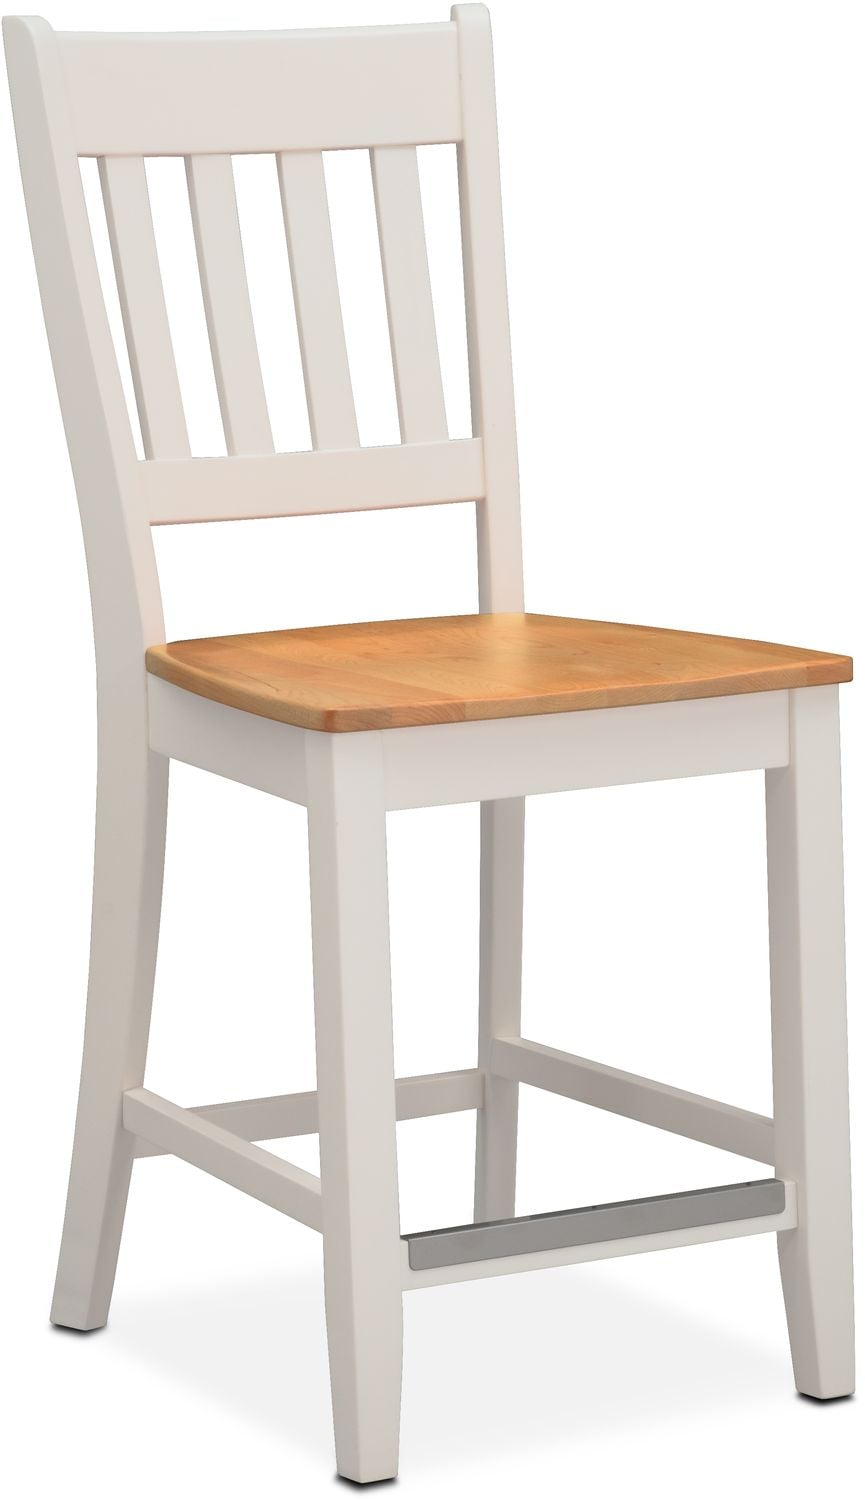 Nantucket Counter-Height Slat-Back Chair - Maple and White